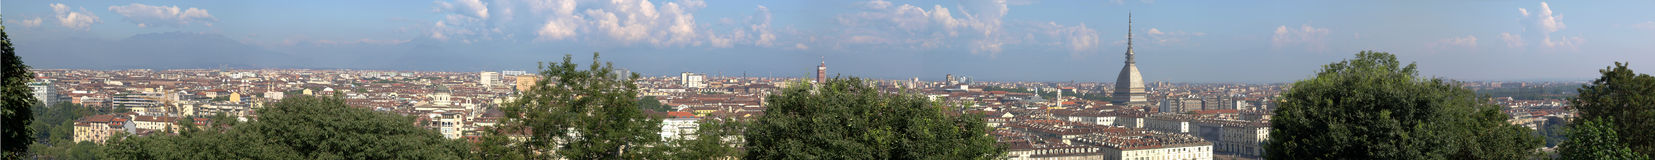 Turin view Stock Images